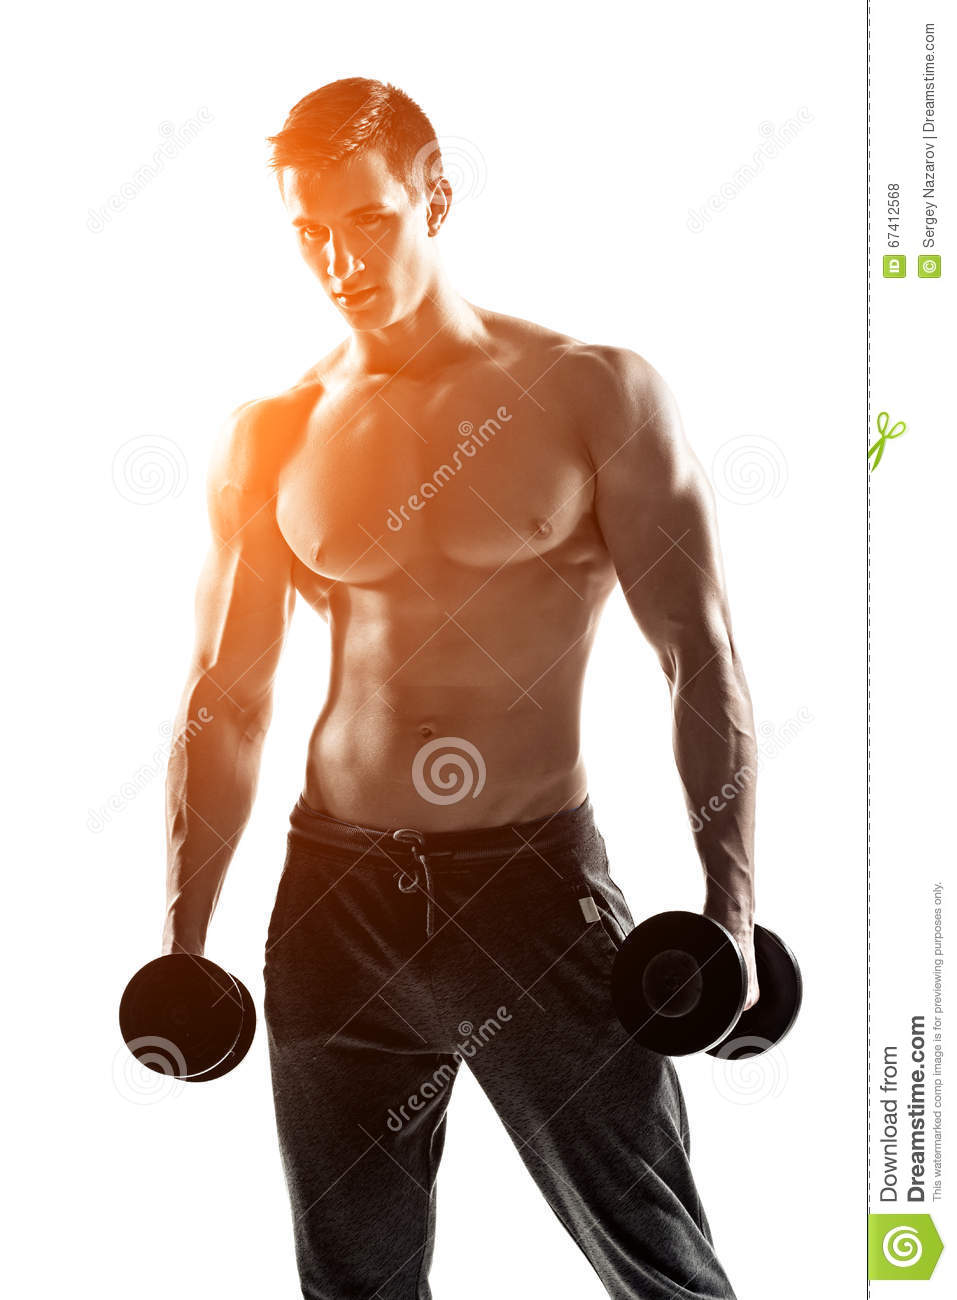 Athletic Man Showing Muscular Body And Doing Exercises